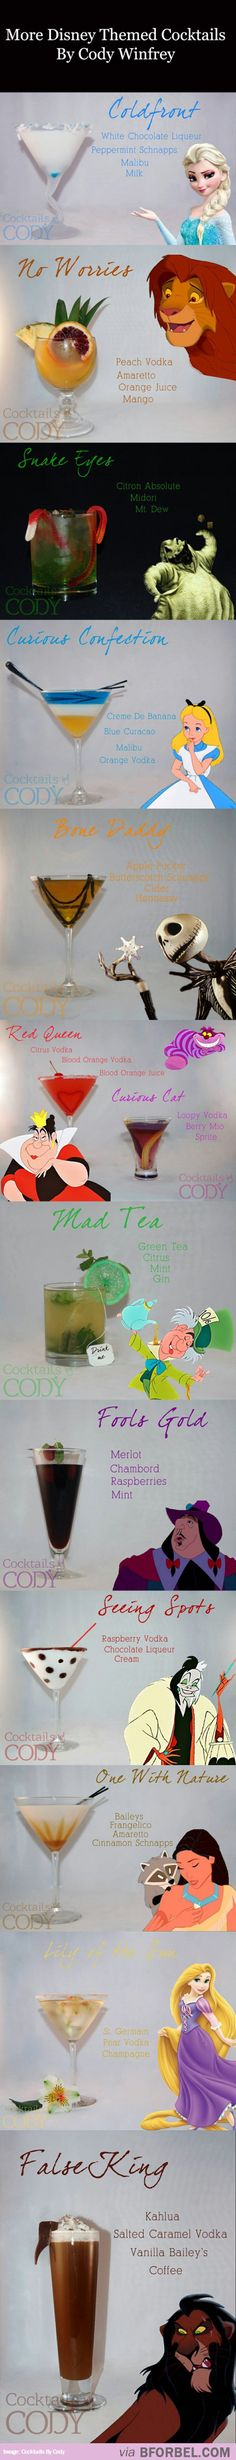 disney themed cocktails